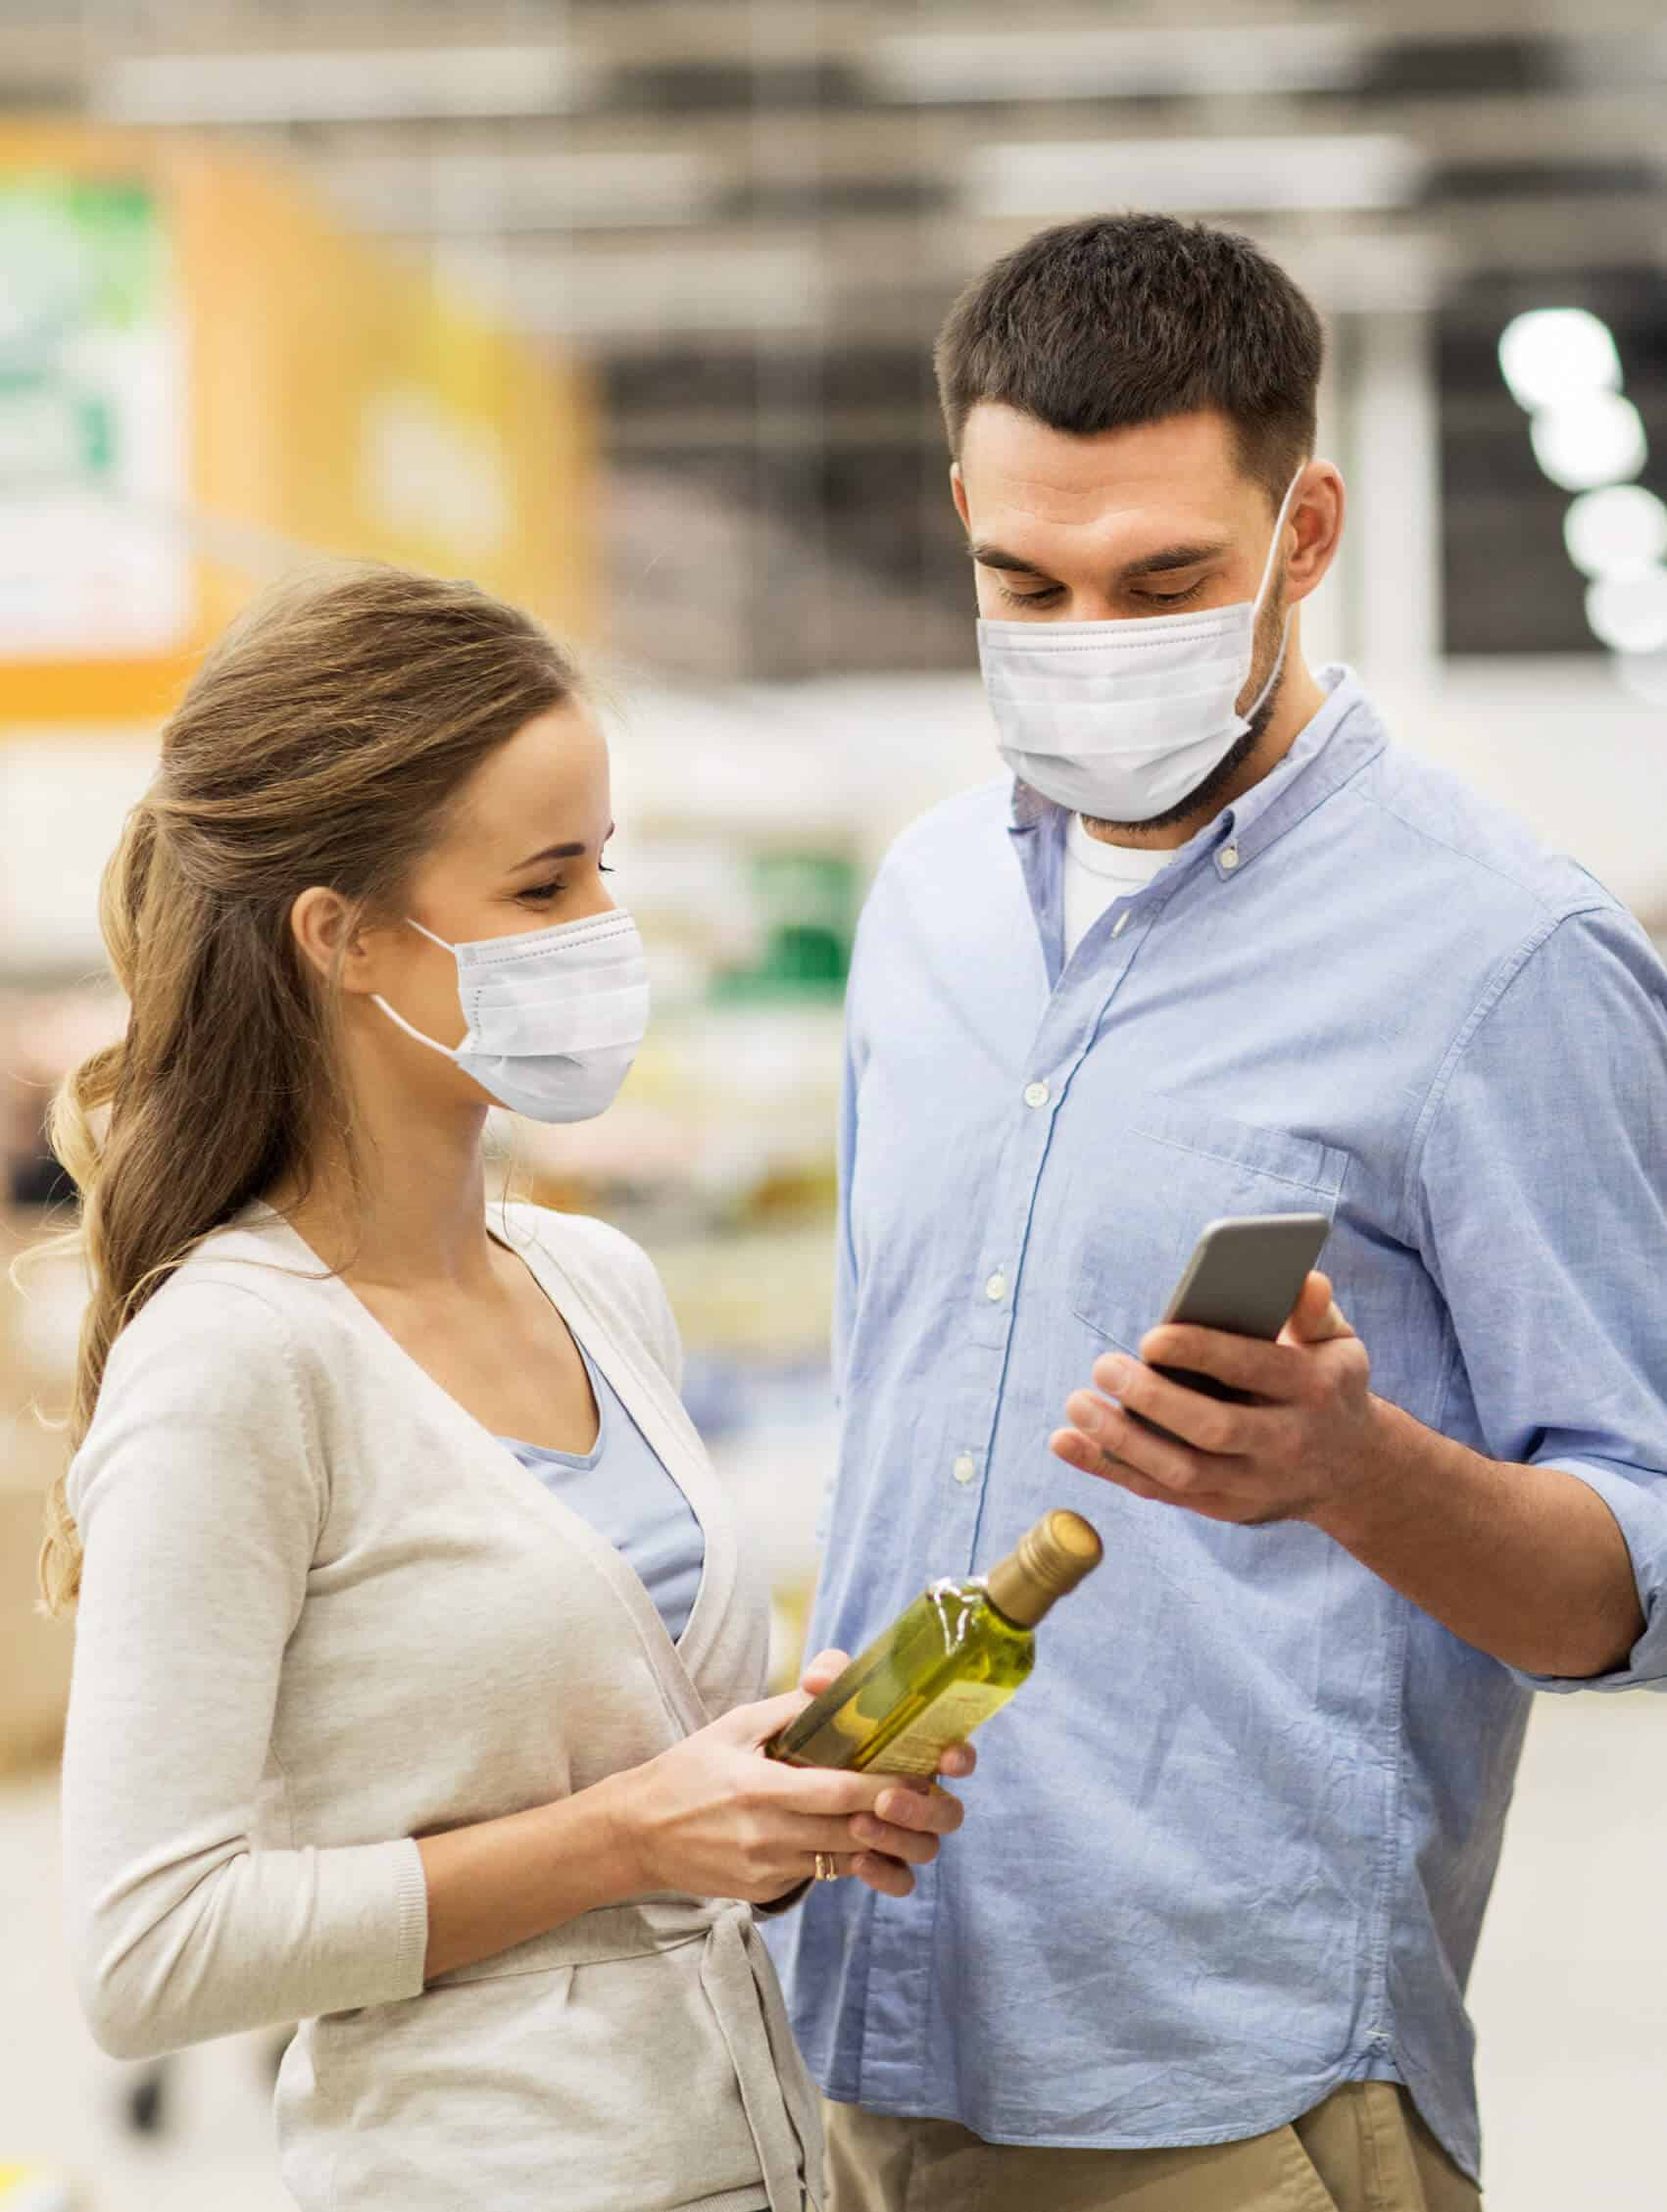 Man and woman grocery shopping while looking at a phone